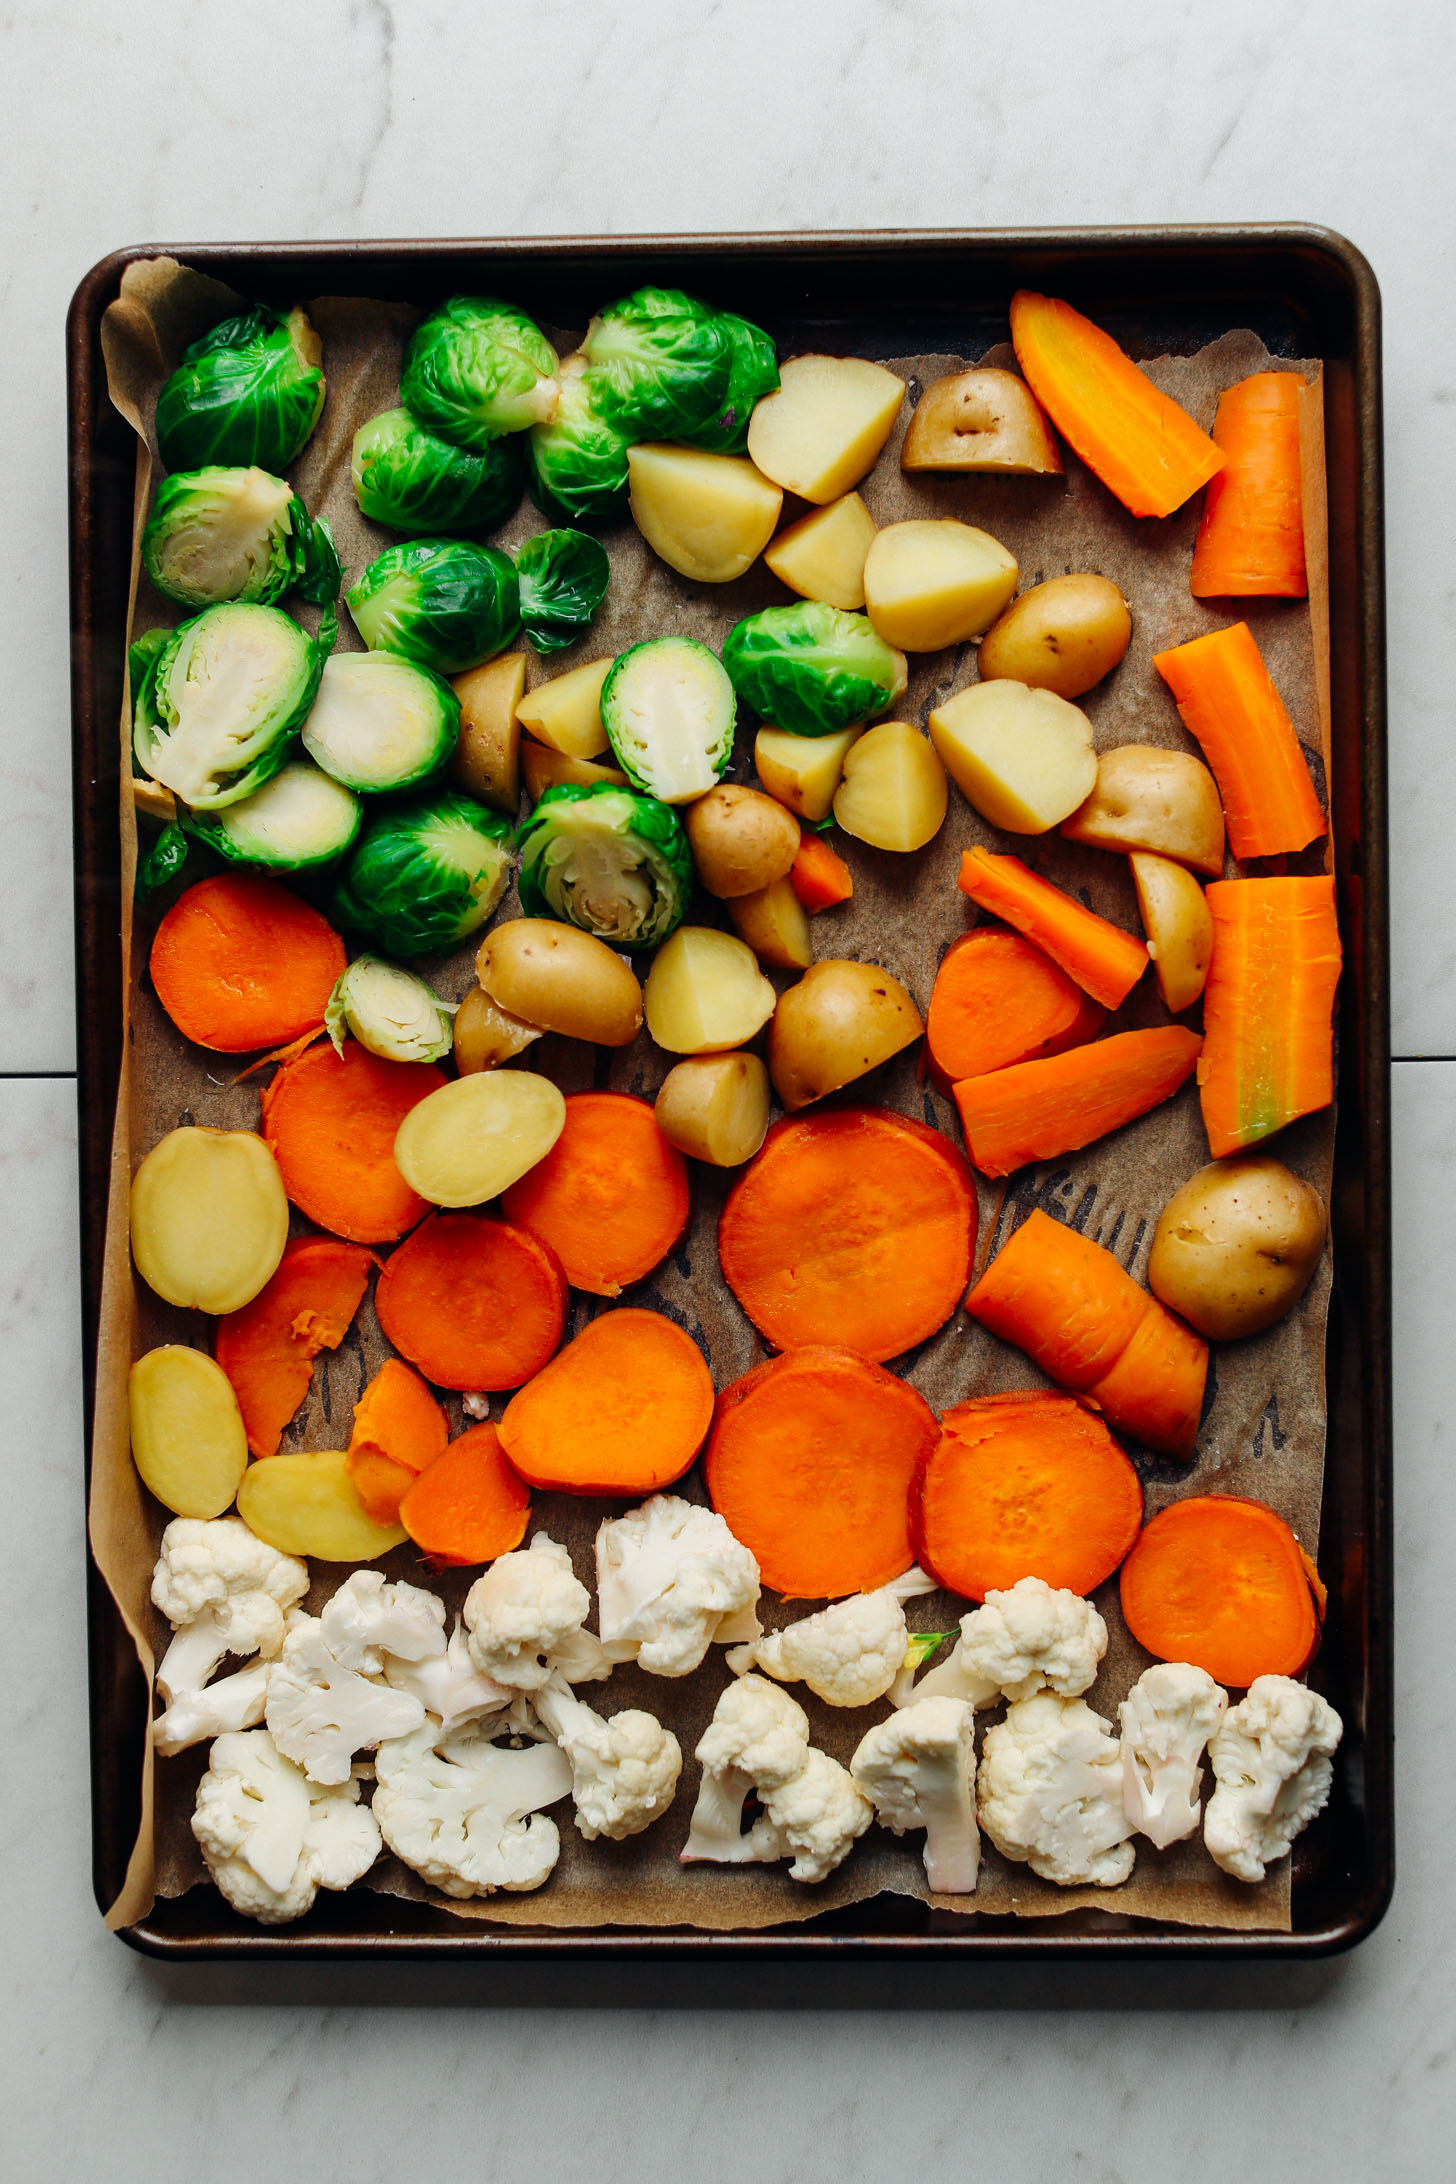 Baking sheet of chopped cauliflower, sweet potatoes, carrots, potatoes, and Brussels Sprouts ready for roasting